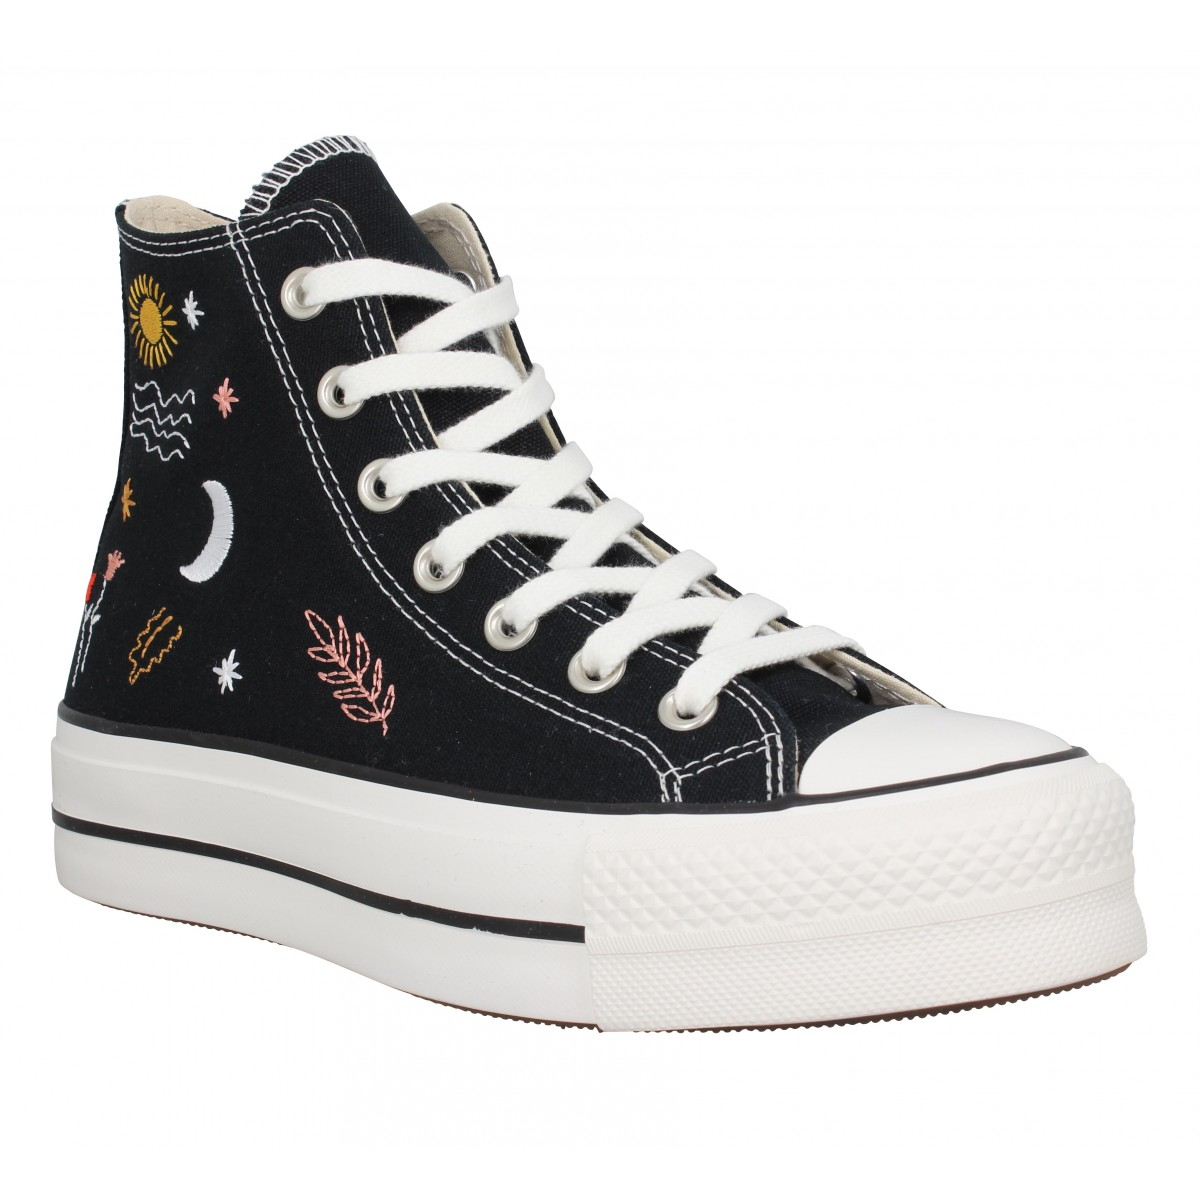 Baskets CONVERSE CT All Star Lift Hi It's Okay To Wander toile Femme Noir